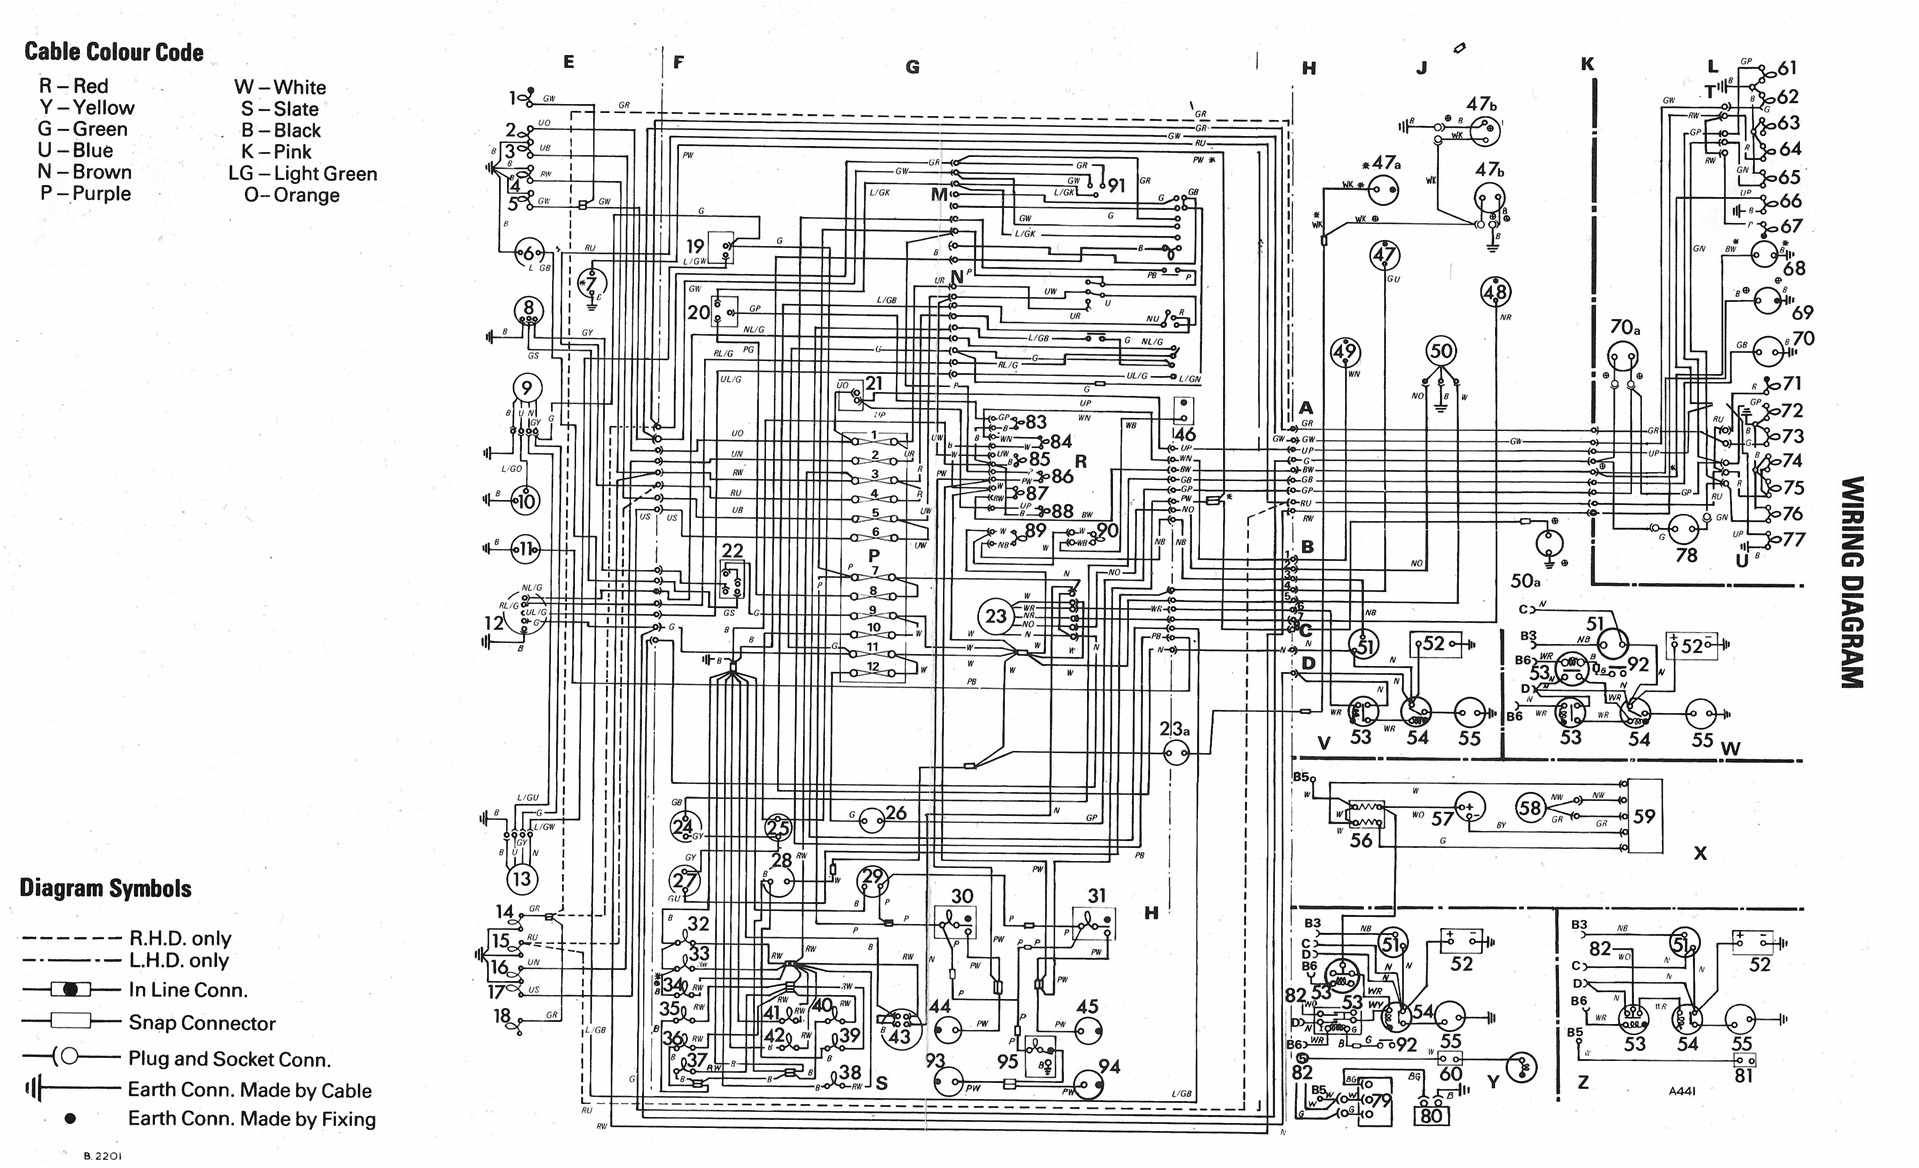 medium resolution of vw golf wiring diagram wiring diagram name vw golf wiring diagram download vw bora wiring diagram download